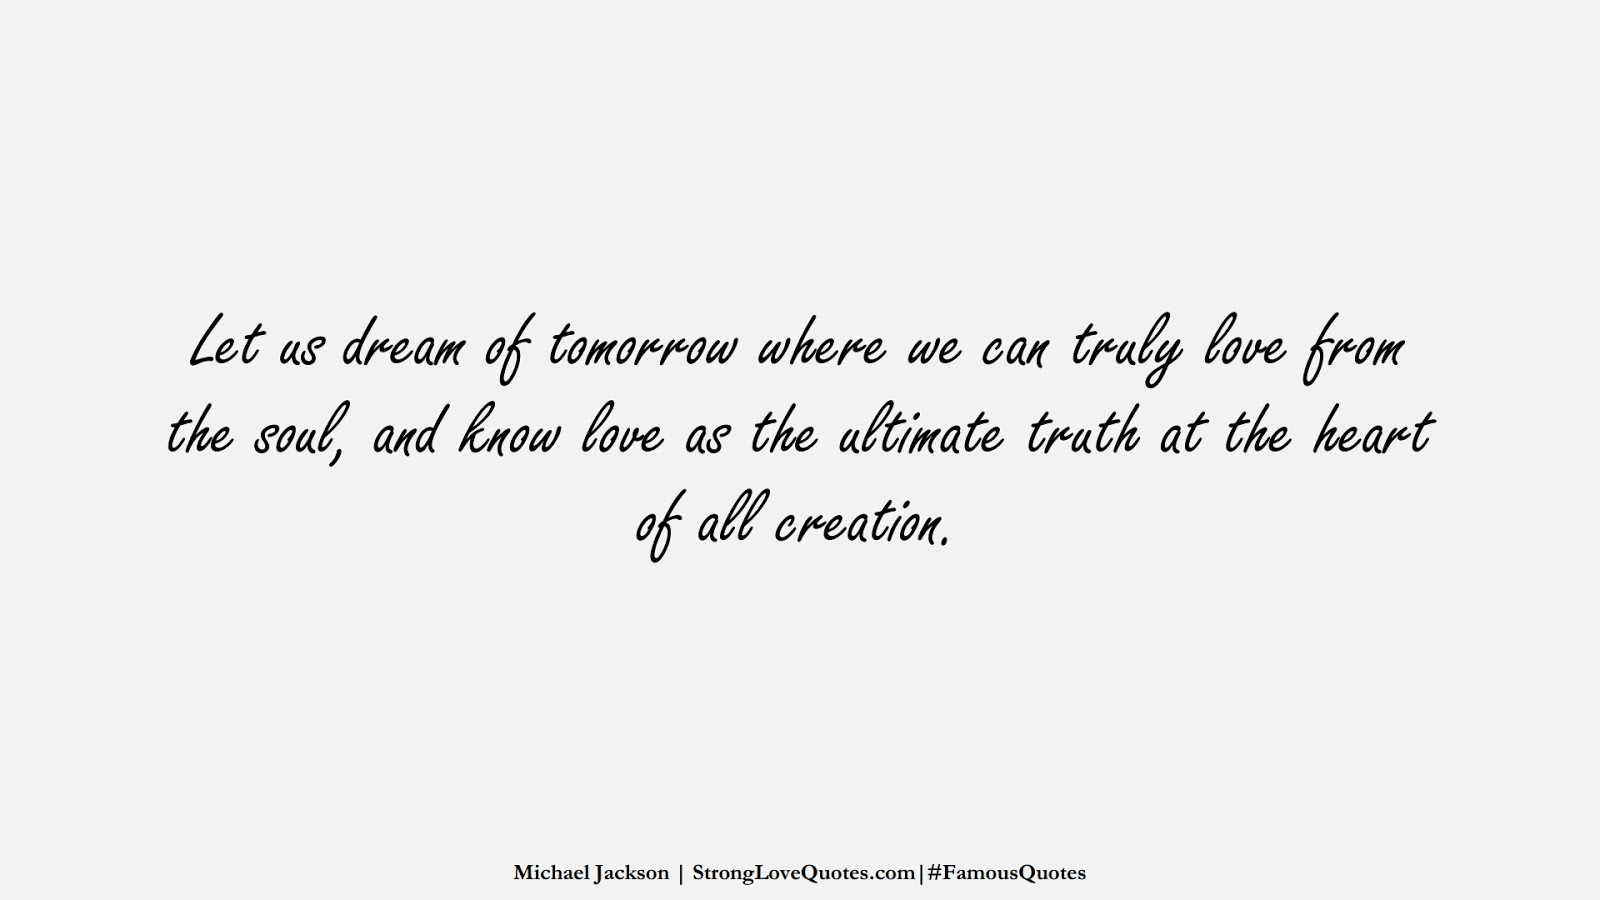 Let us dream of tomorrow where we can truly love from the soul, and know love as the ultimate truth at the heart of all creation. (Michael Jackson);  #FamousQuotes